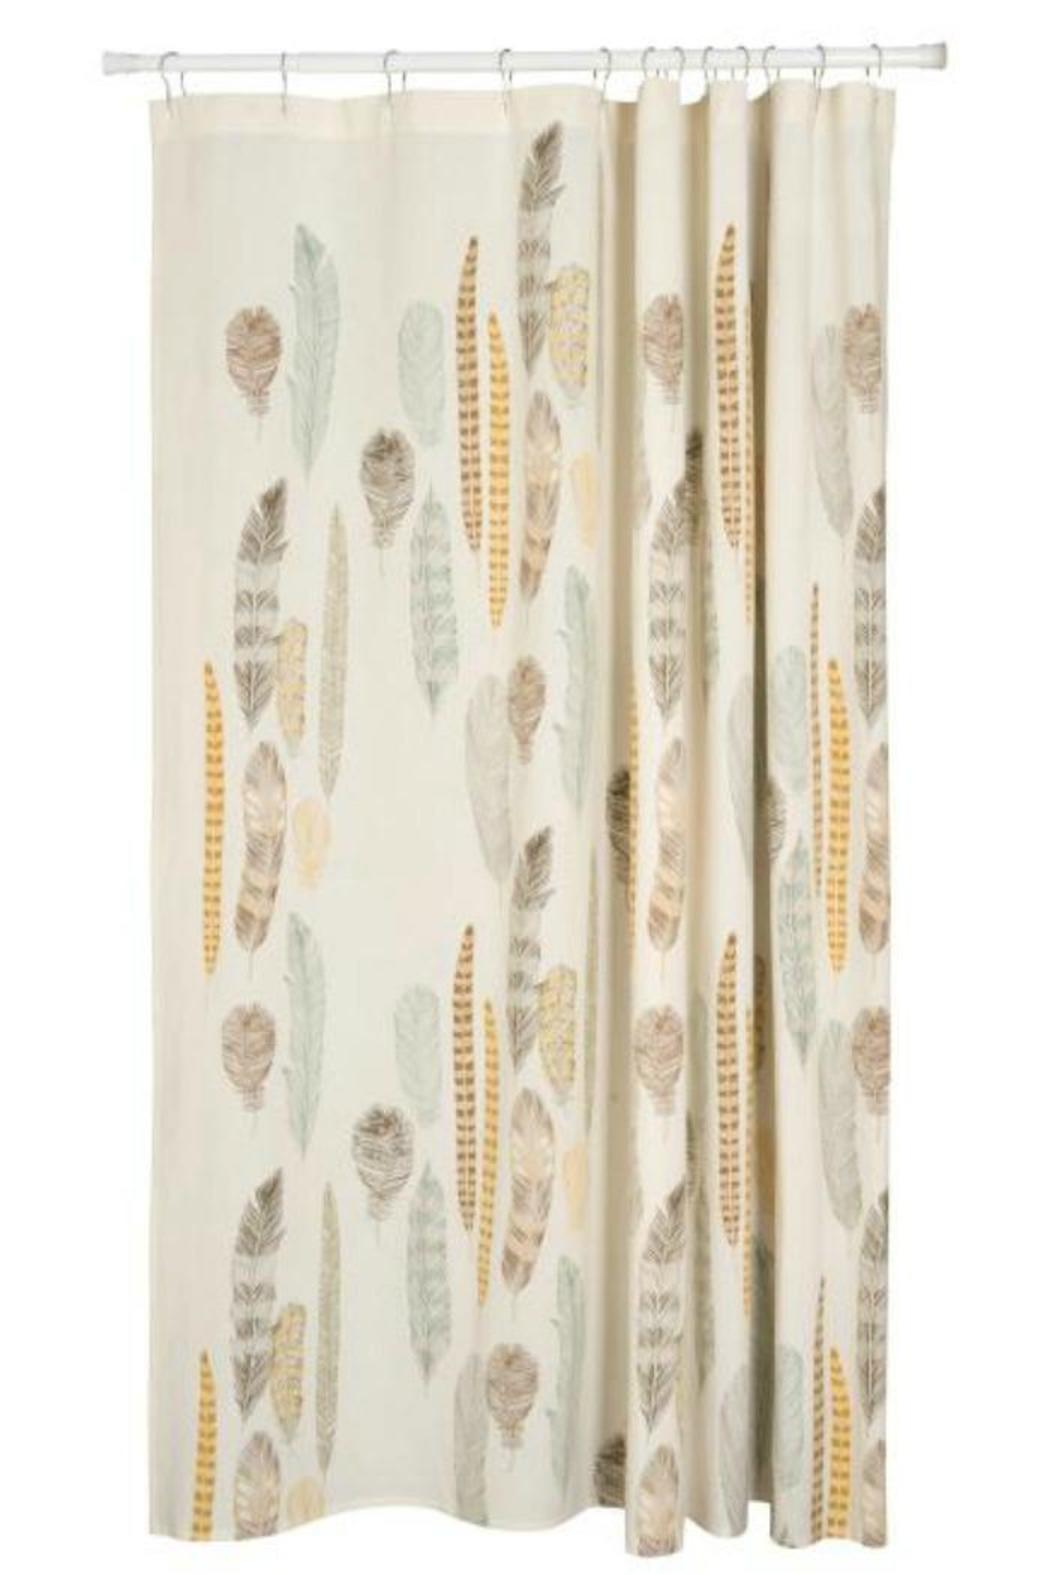 Danica Studio Quill Shower Curtain